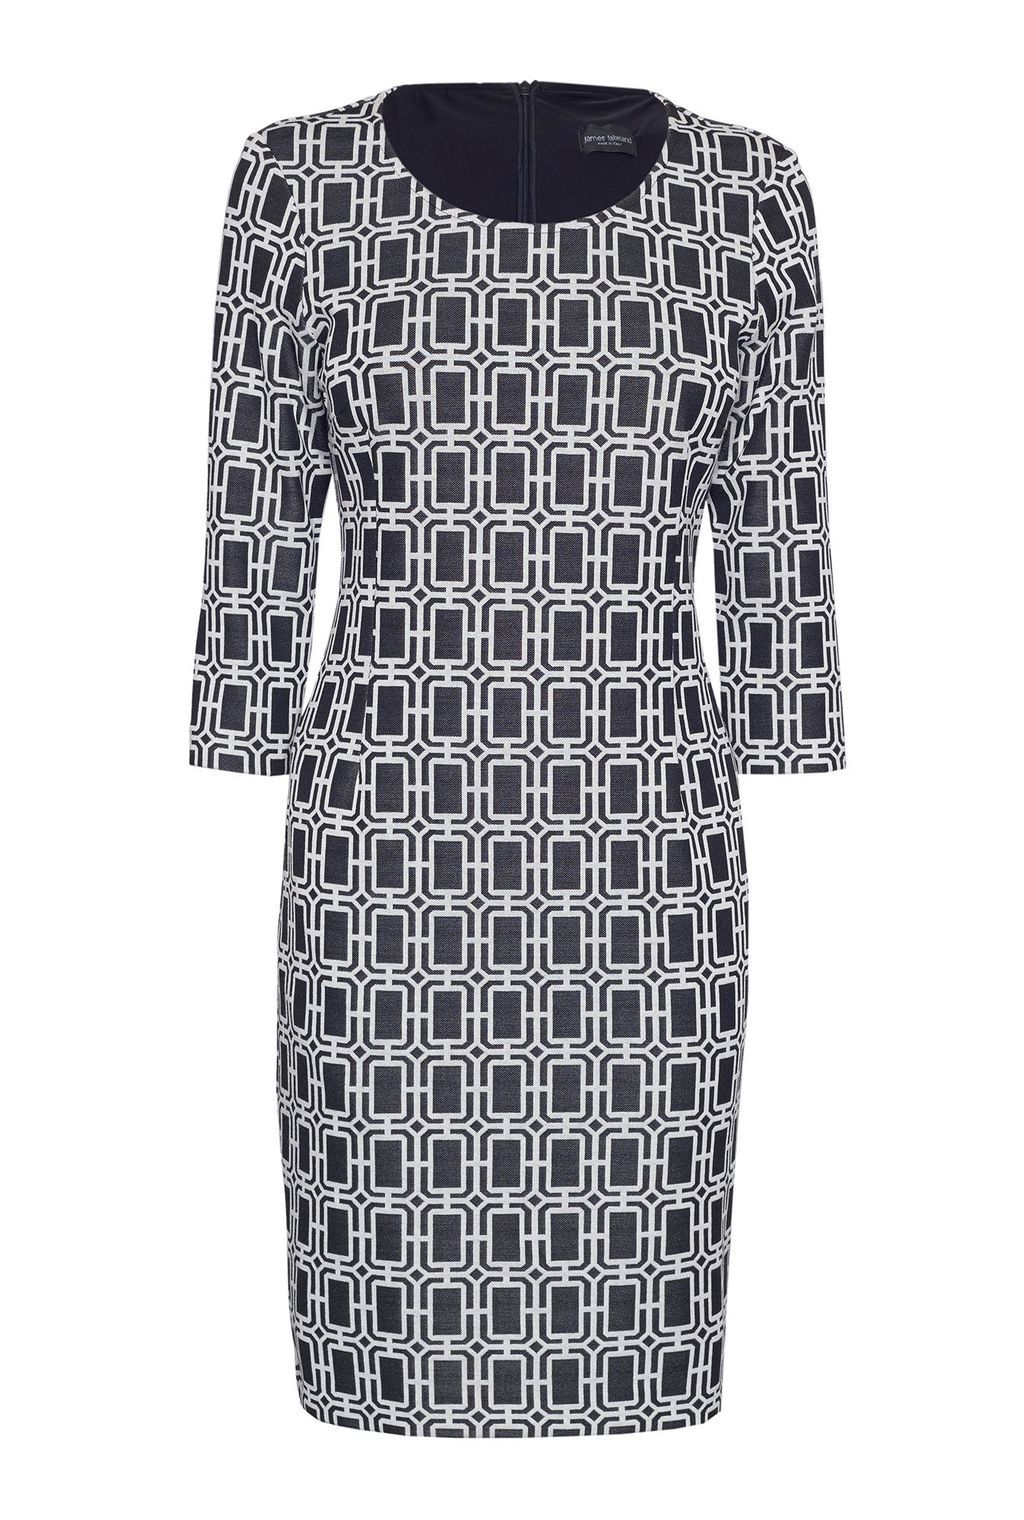 3/4 Sleeve Jacquard Dress, White - style: shift; fit: tailored/fitted; pattern: checked/gingham; secondary colour: white; predominant colour: black; occasions: evening, occasion; length: just above the knee; fibres: polyester/polyamide - stretch; neckline: crew; sleeve length: 3/4 length; sleeve style: standard; trends: monochrome; pattern type: fabric; pattern size: standard; texture group: brocade/jacquard; season: s/s 2016; wardrobe: event